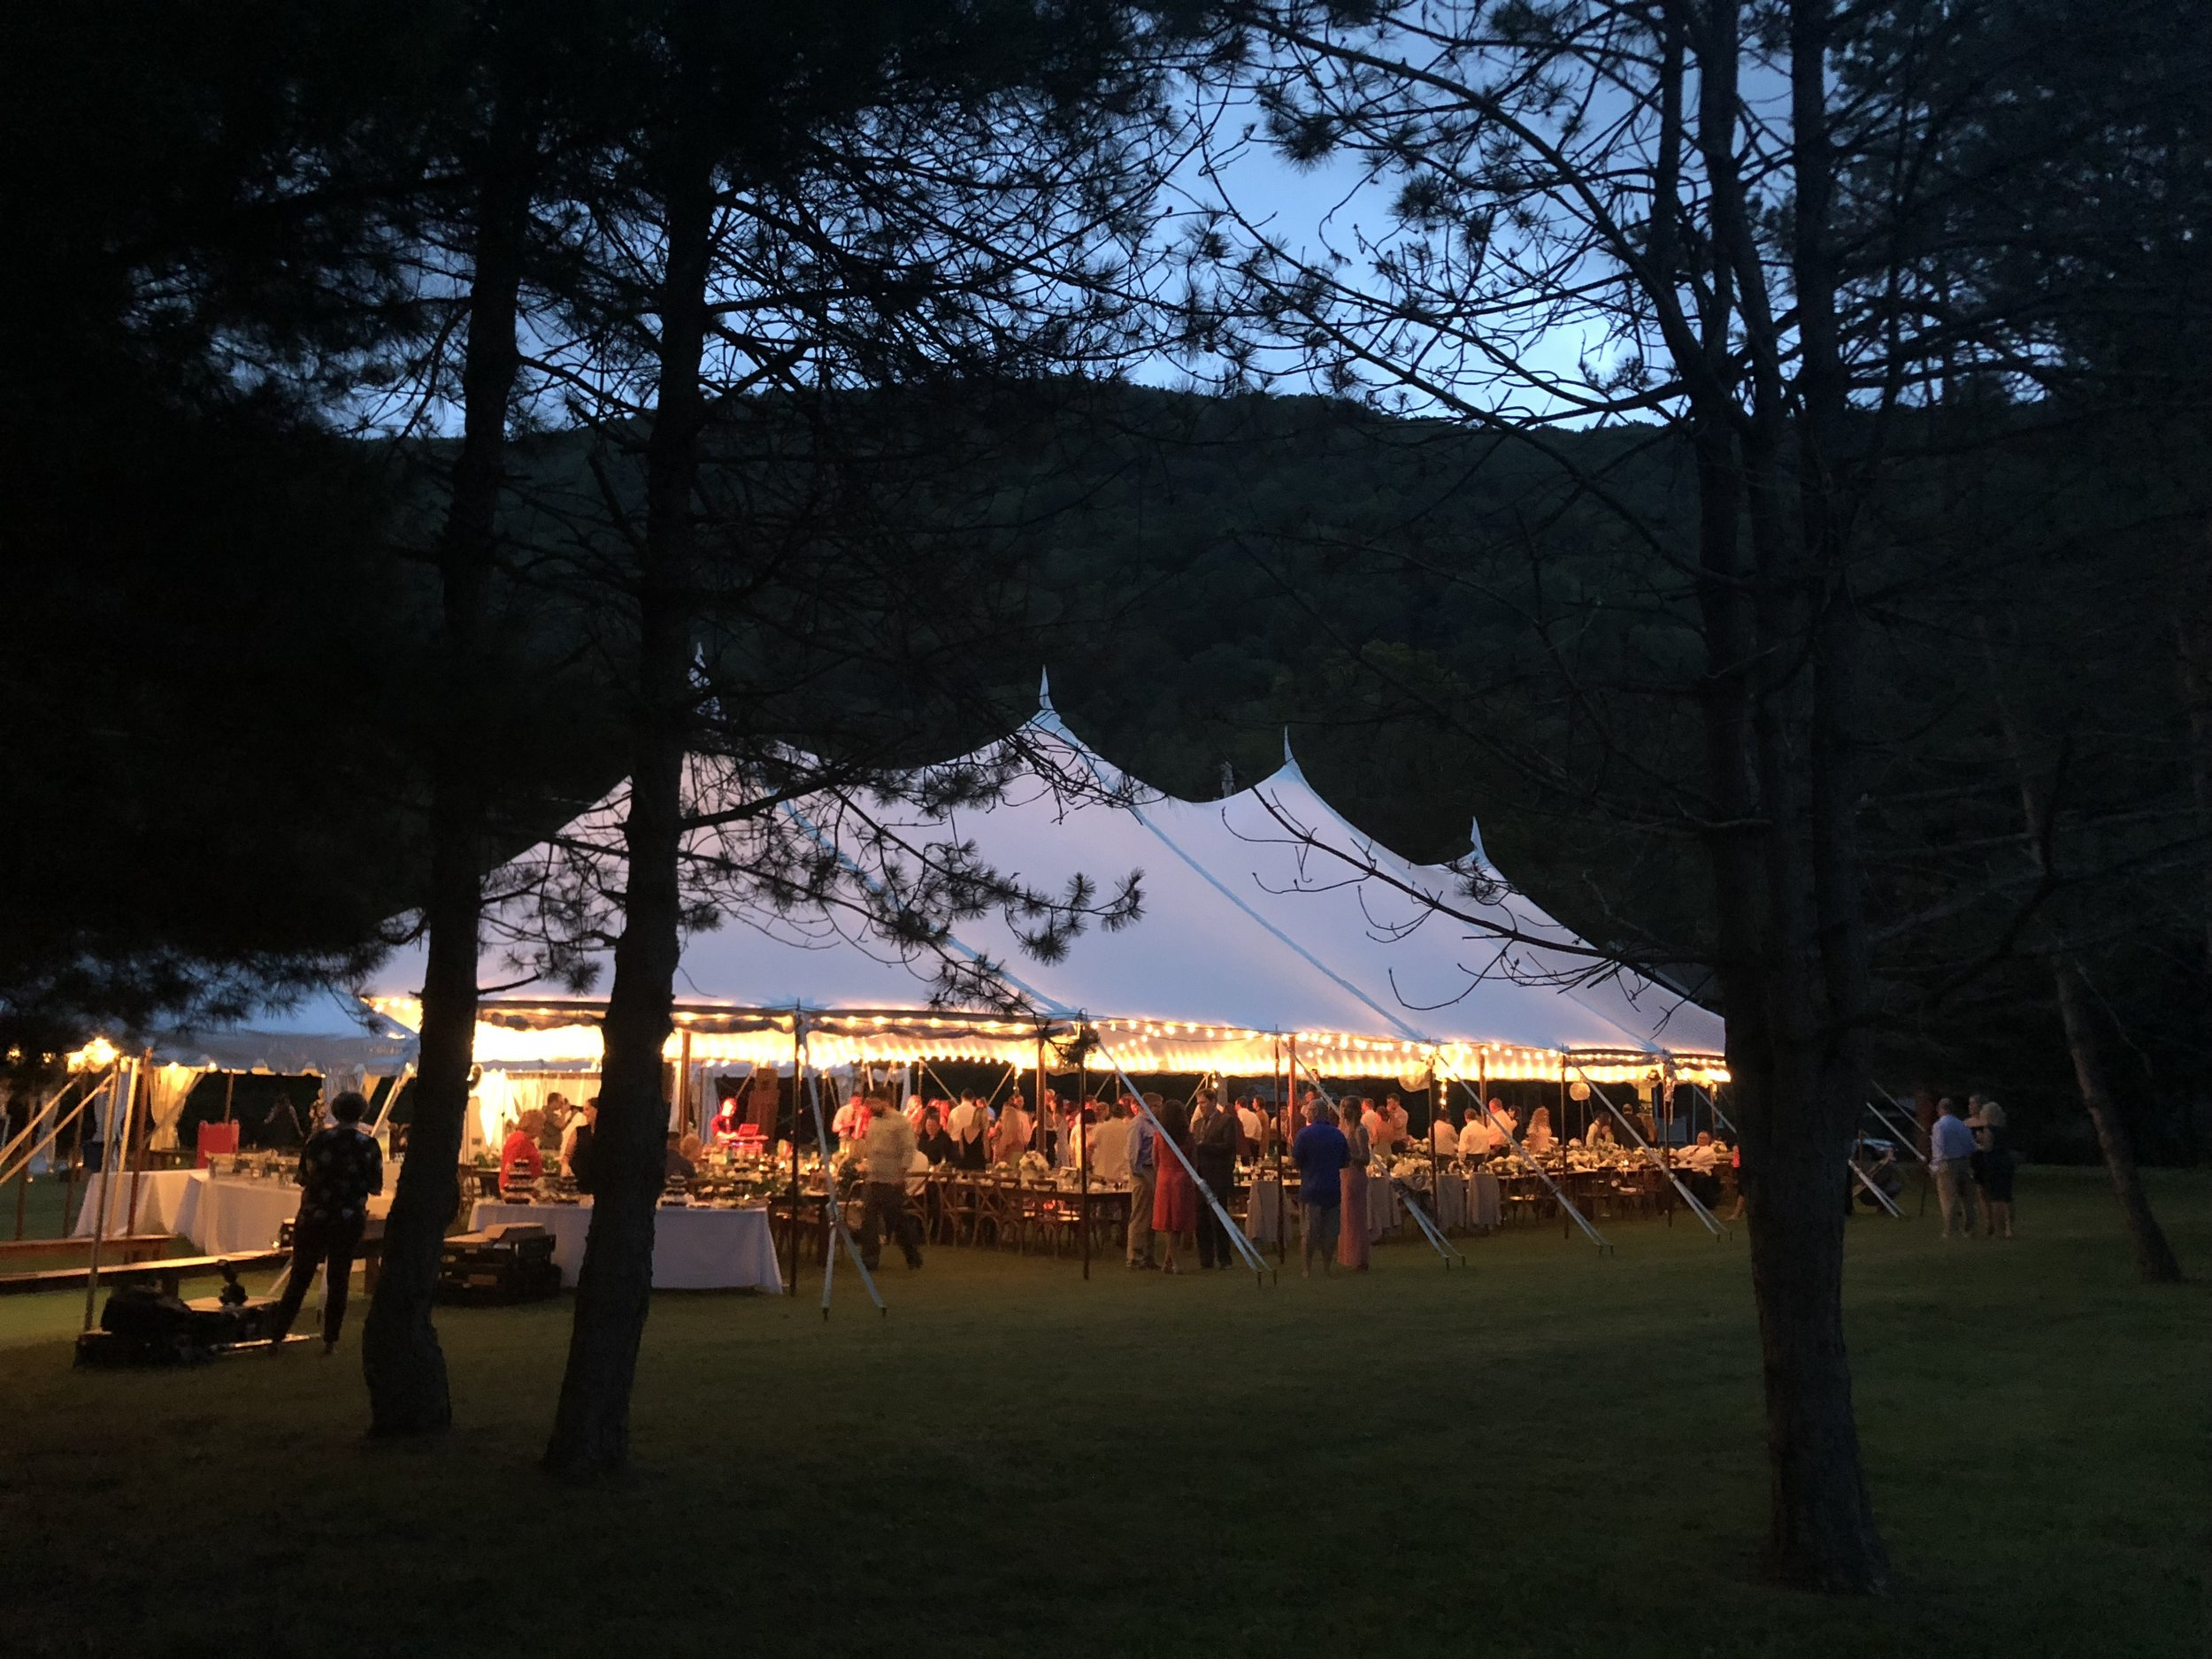 Outdoor tent wedding in the trees